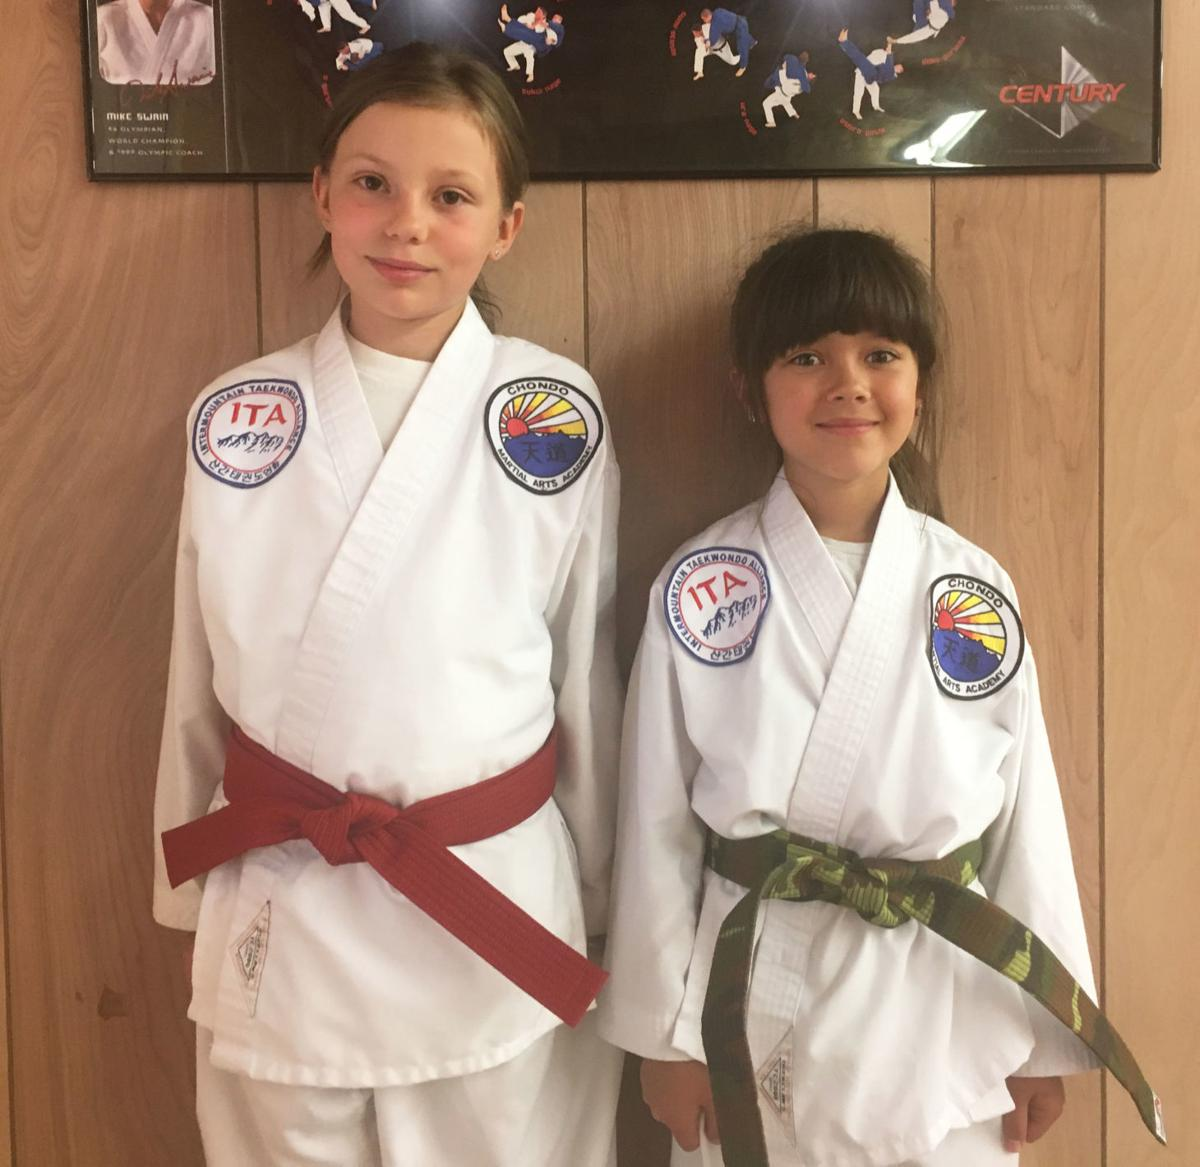 2 youths advance in tae kwon do